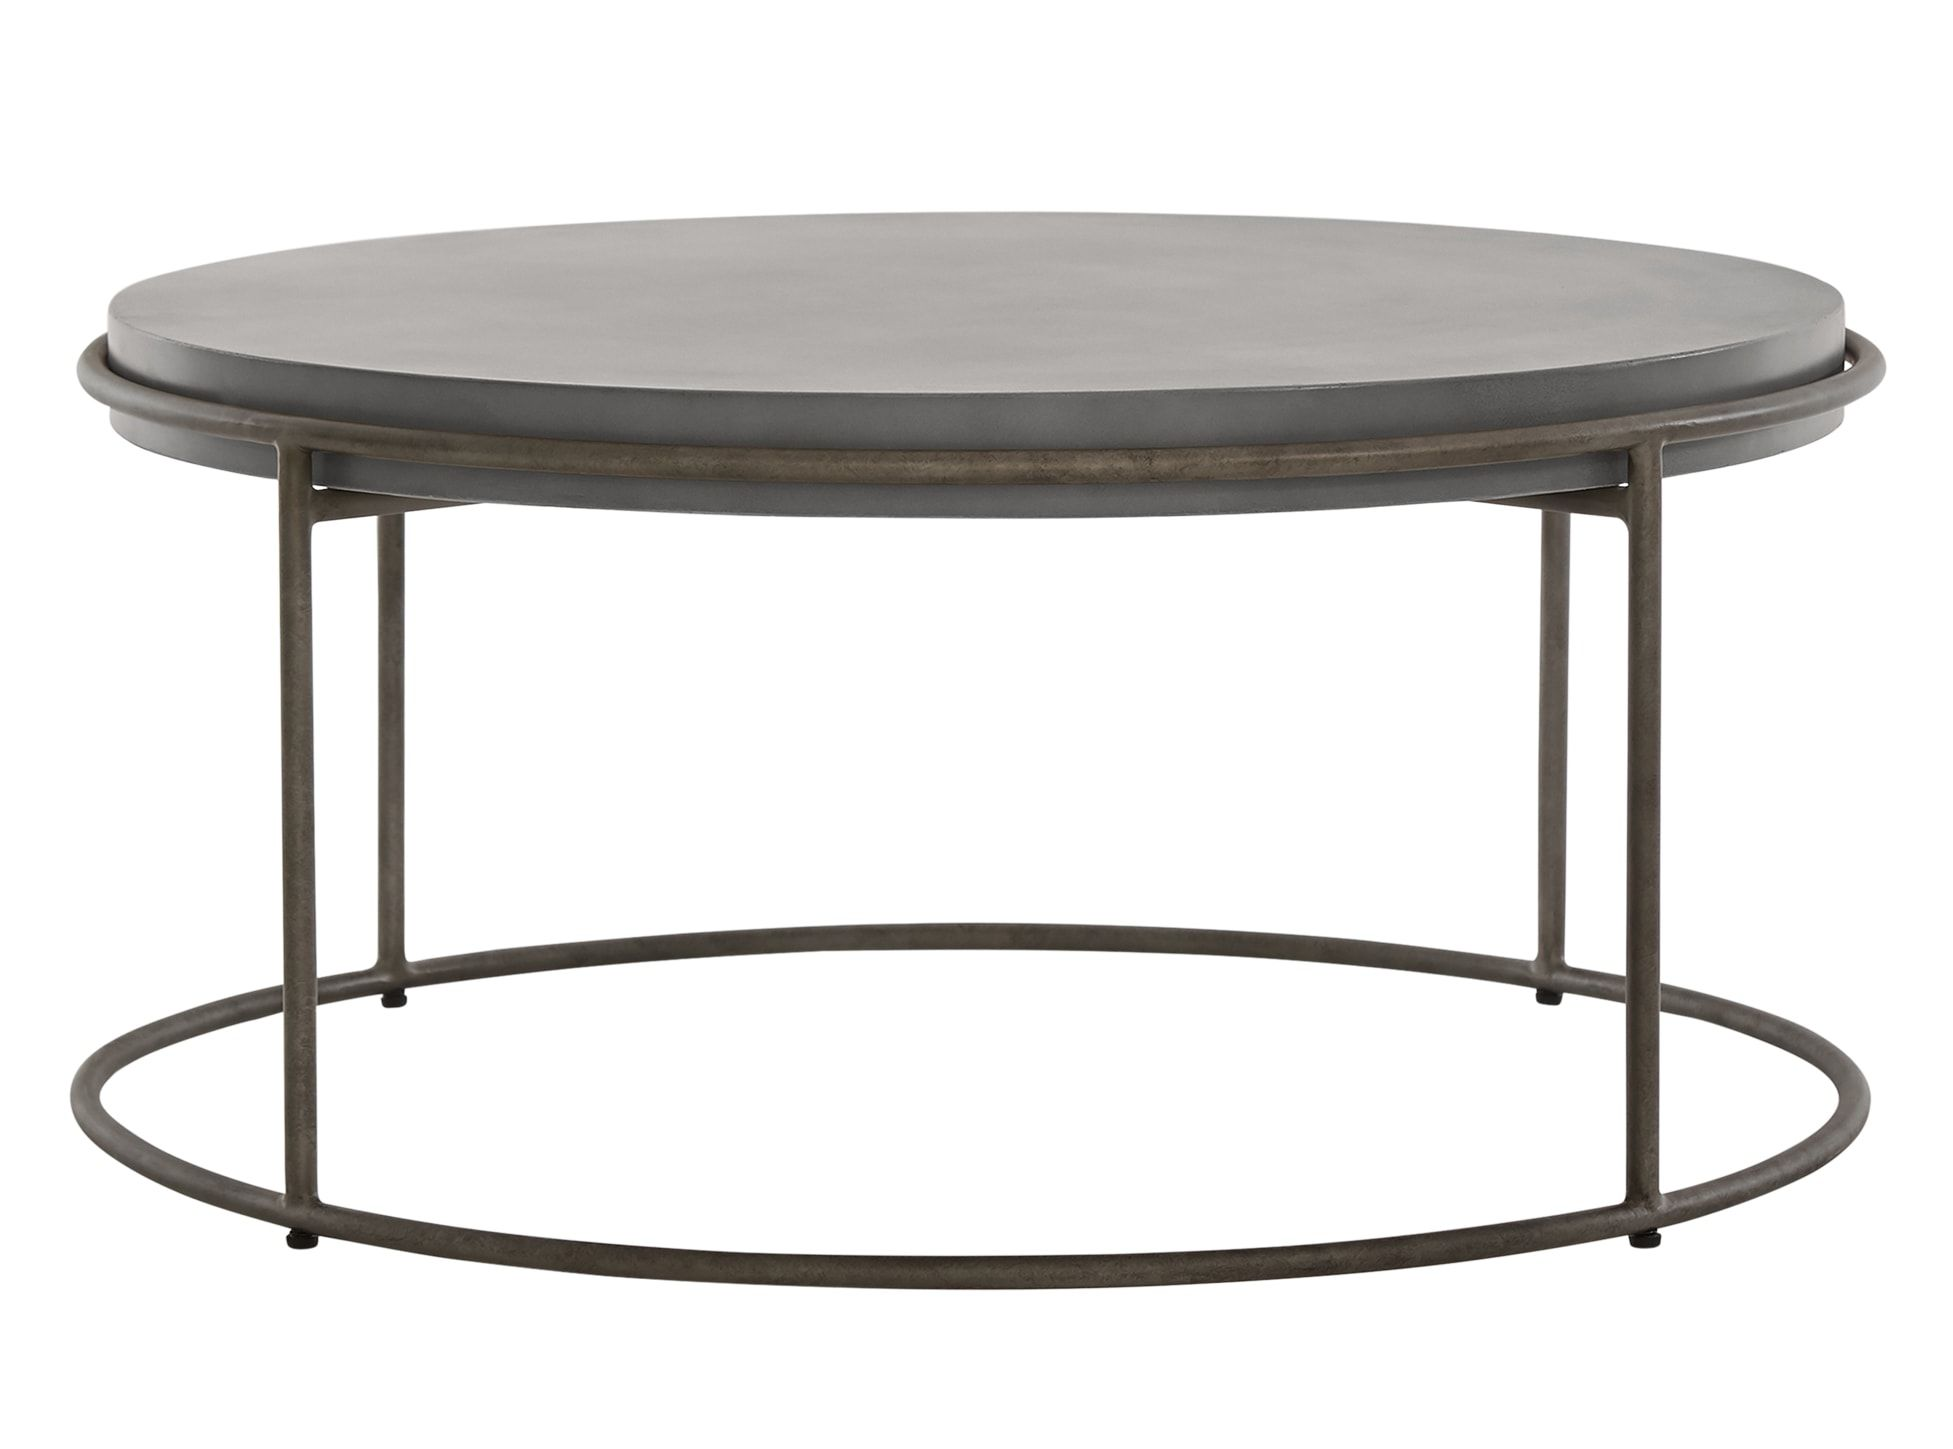 Table Basse En Beton Zurn Table Basse Ronde Béton Tahaa Round Coffee Table